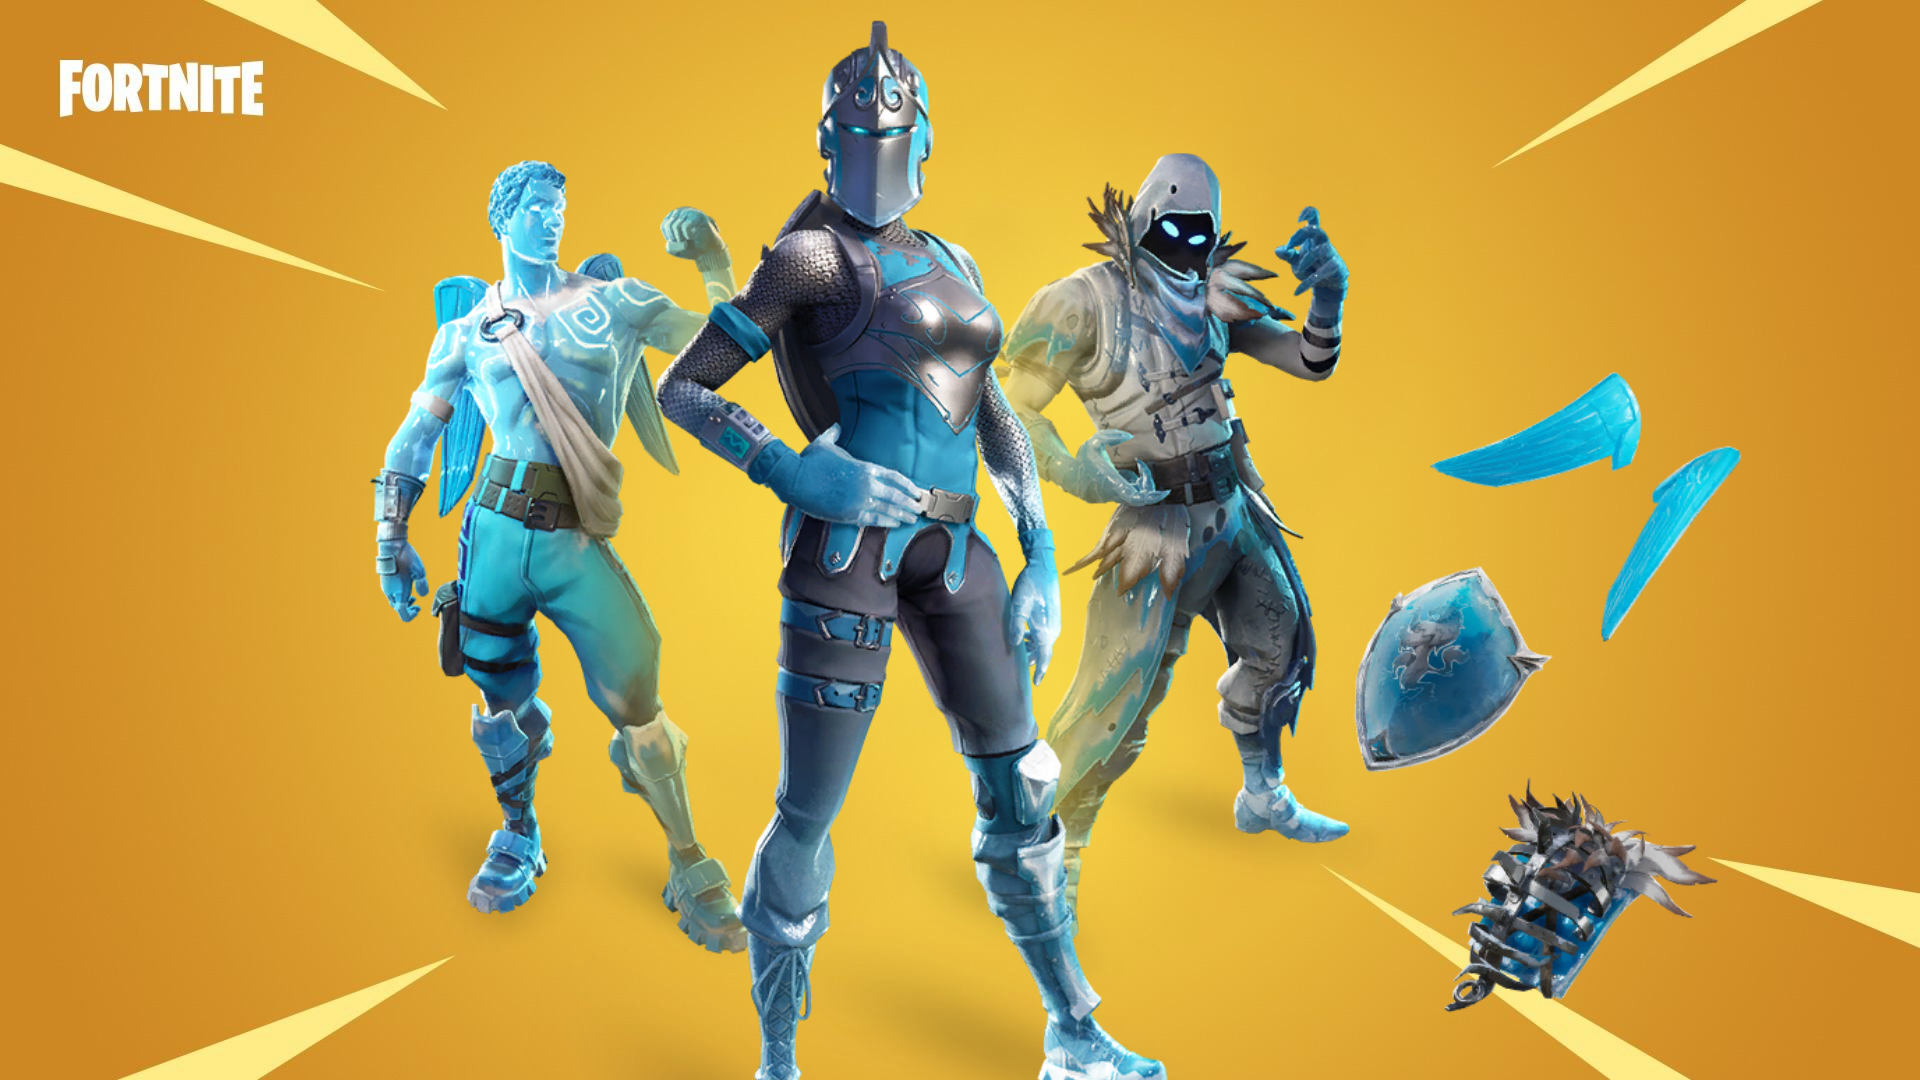 the frozen legends bundle might be on sale for real money only leaks show - how to sell fortnite skins for money